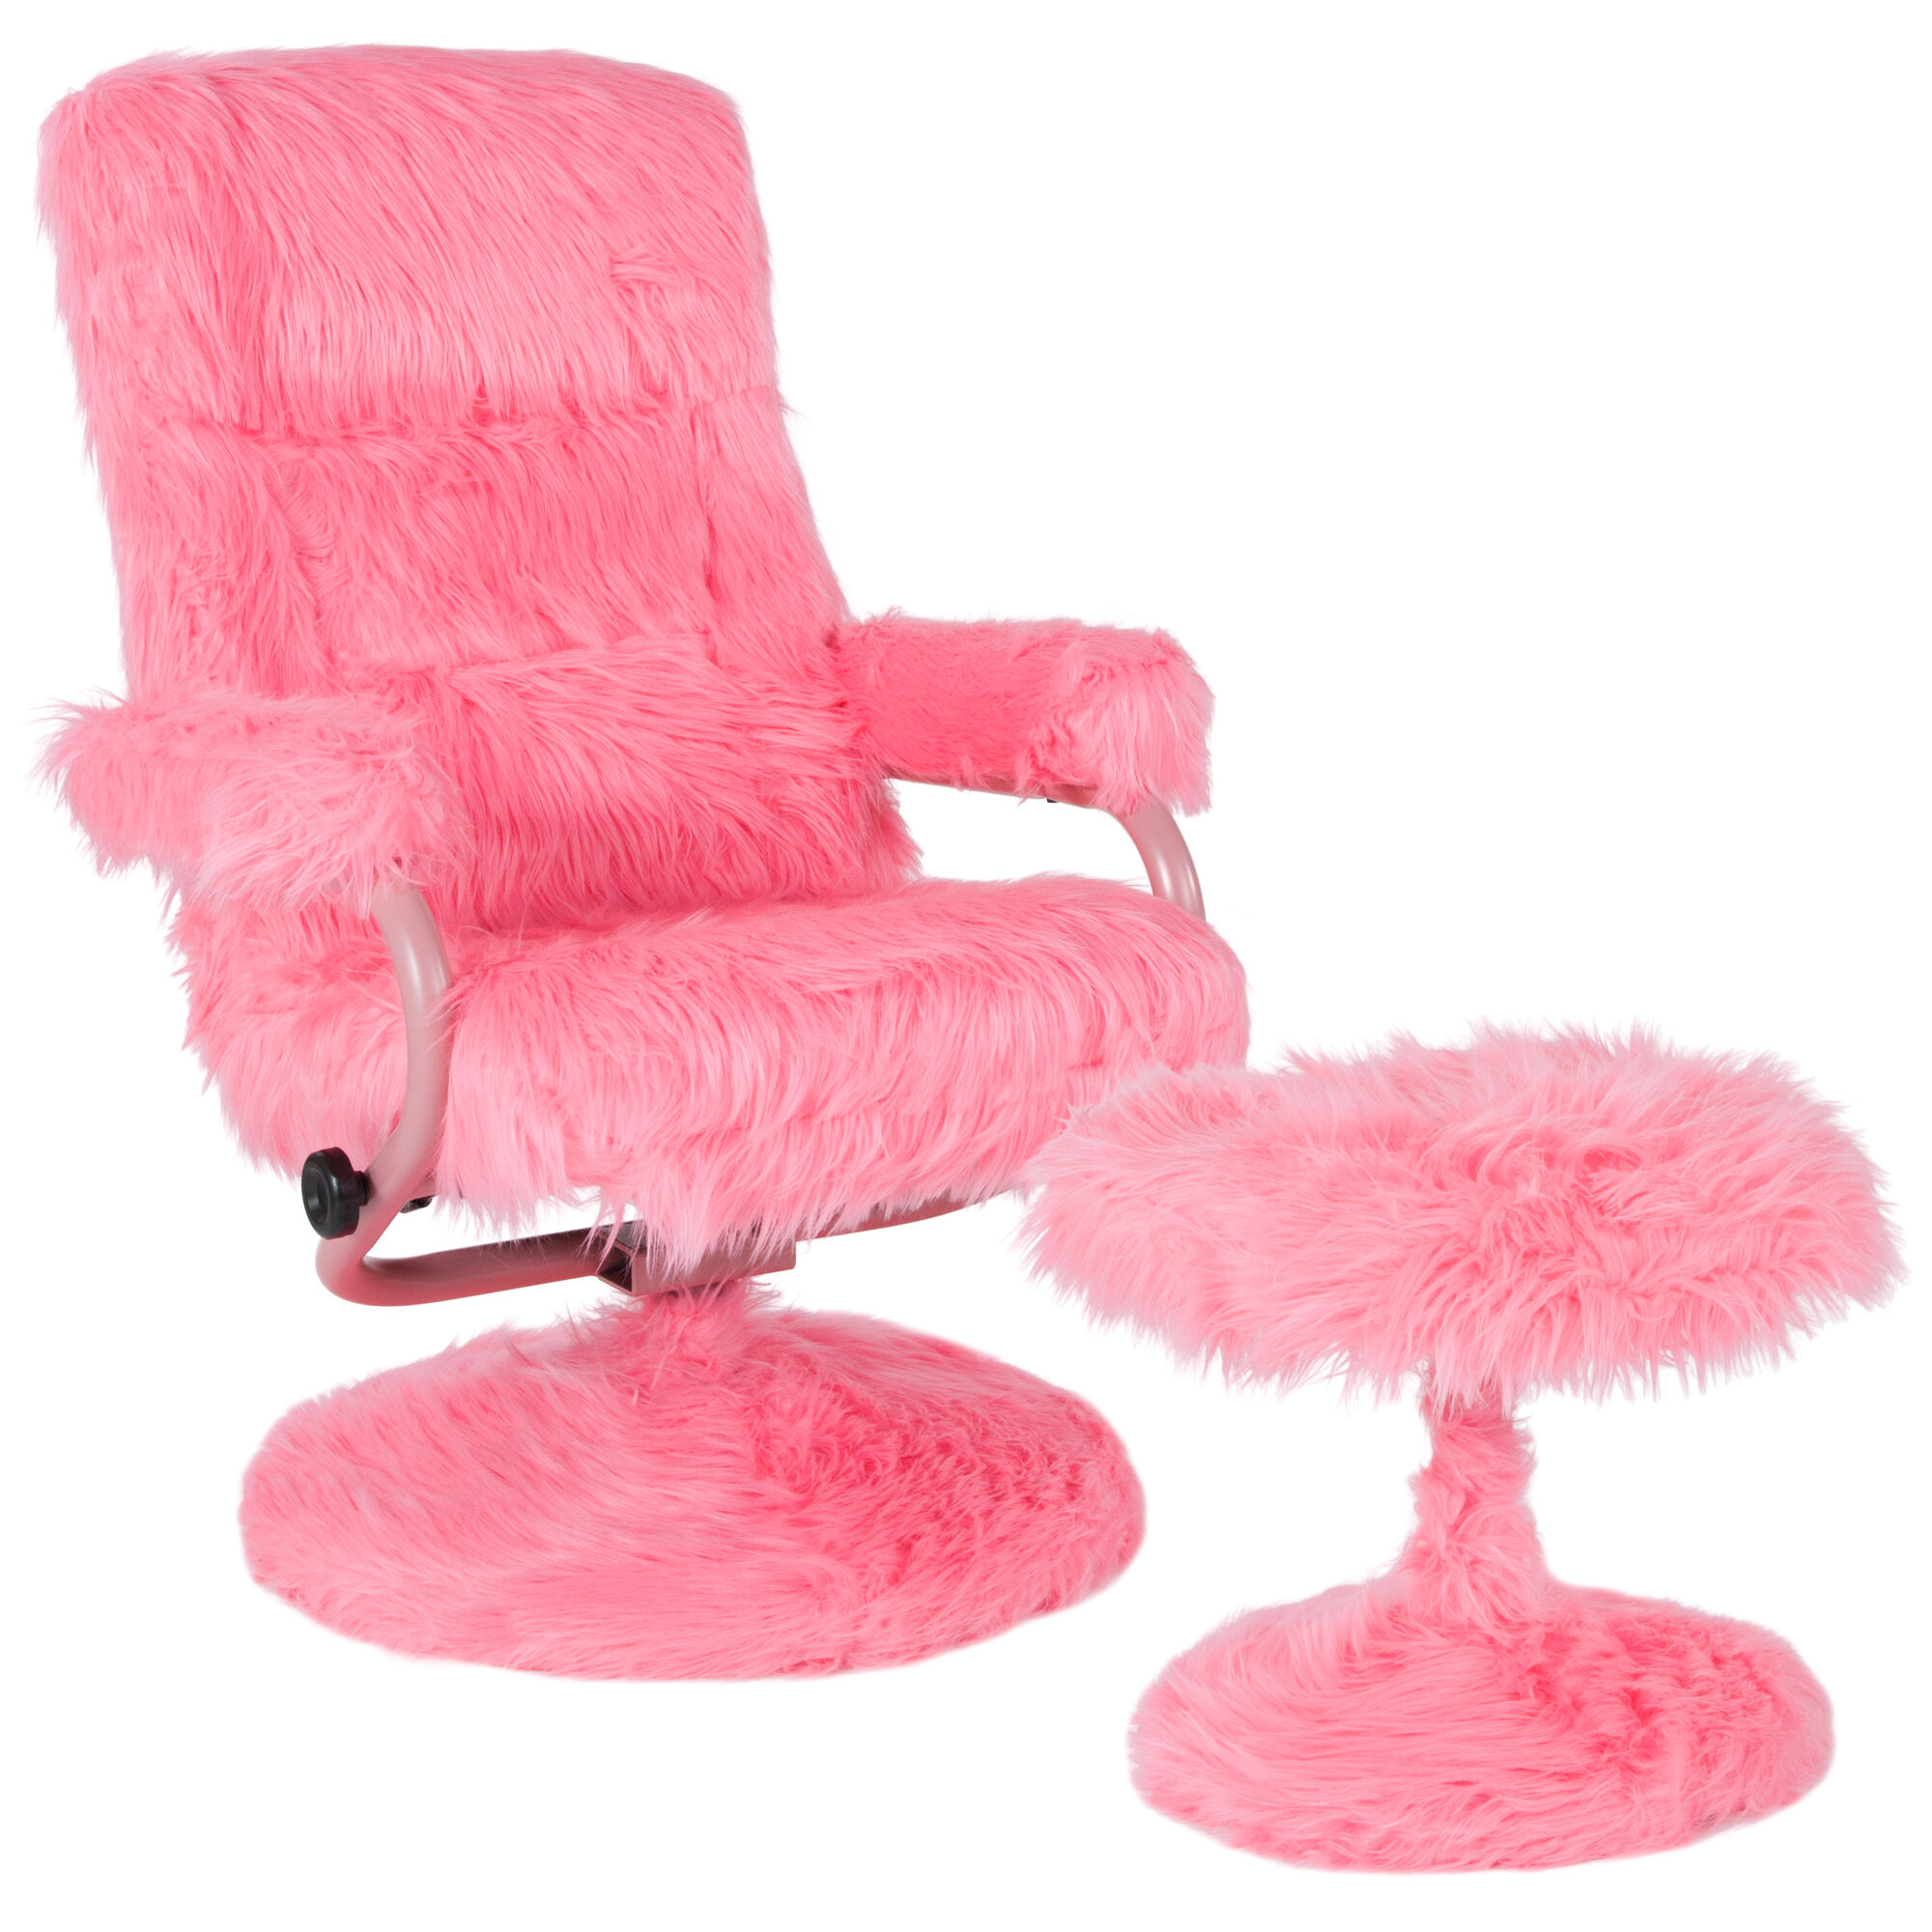 Admirable East Side Contemporary Multi Position Recliner And Ottoman In Pink Fur Alphanode Cool Chair Designs And Ideas Alphanodeonline